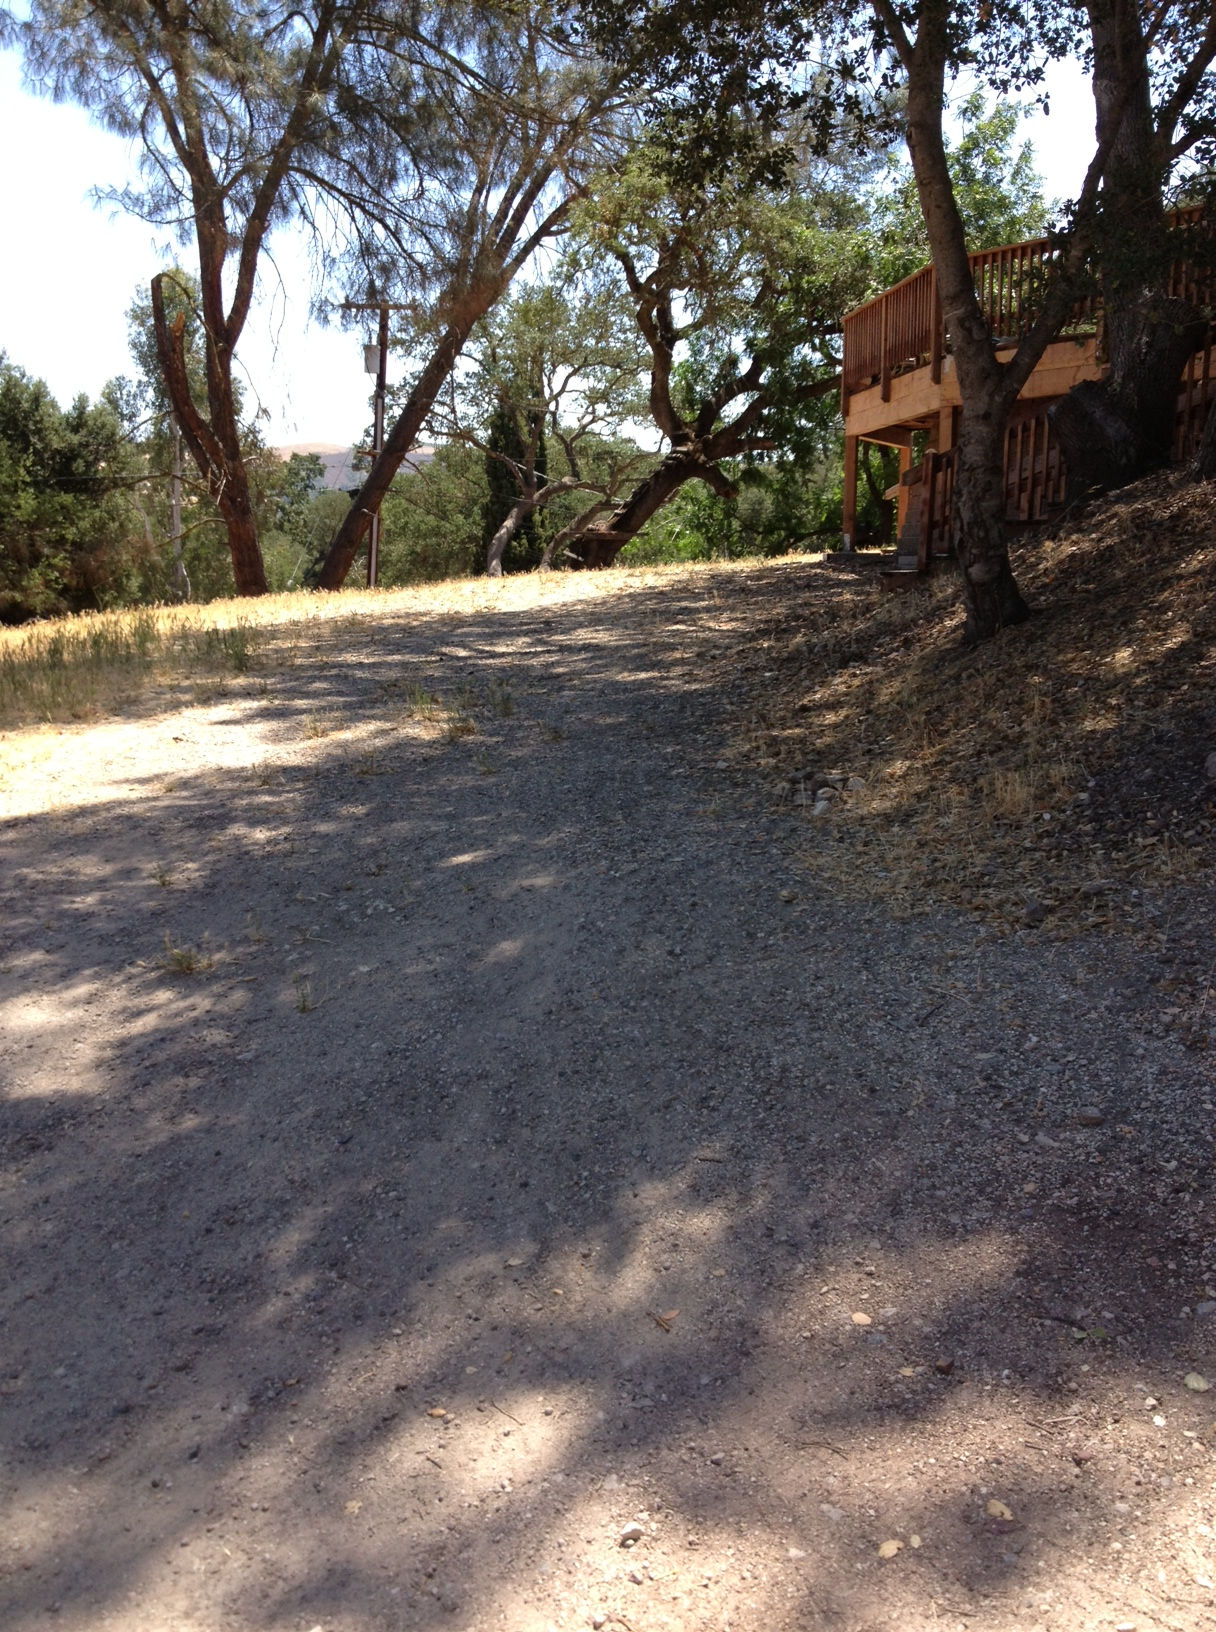 Valle driveway